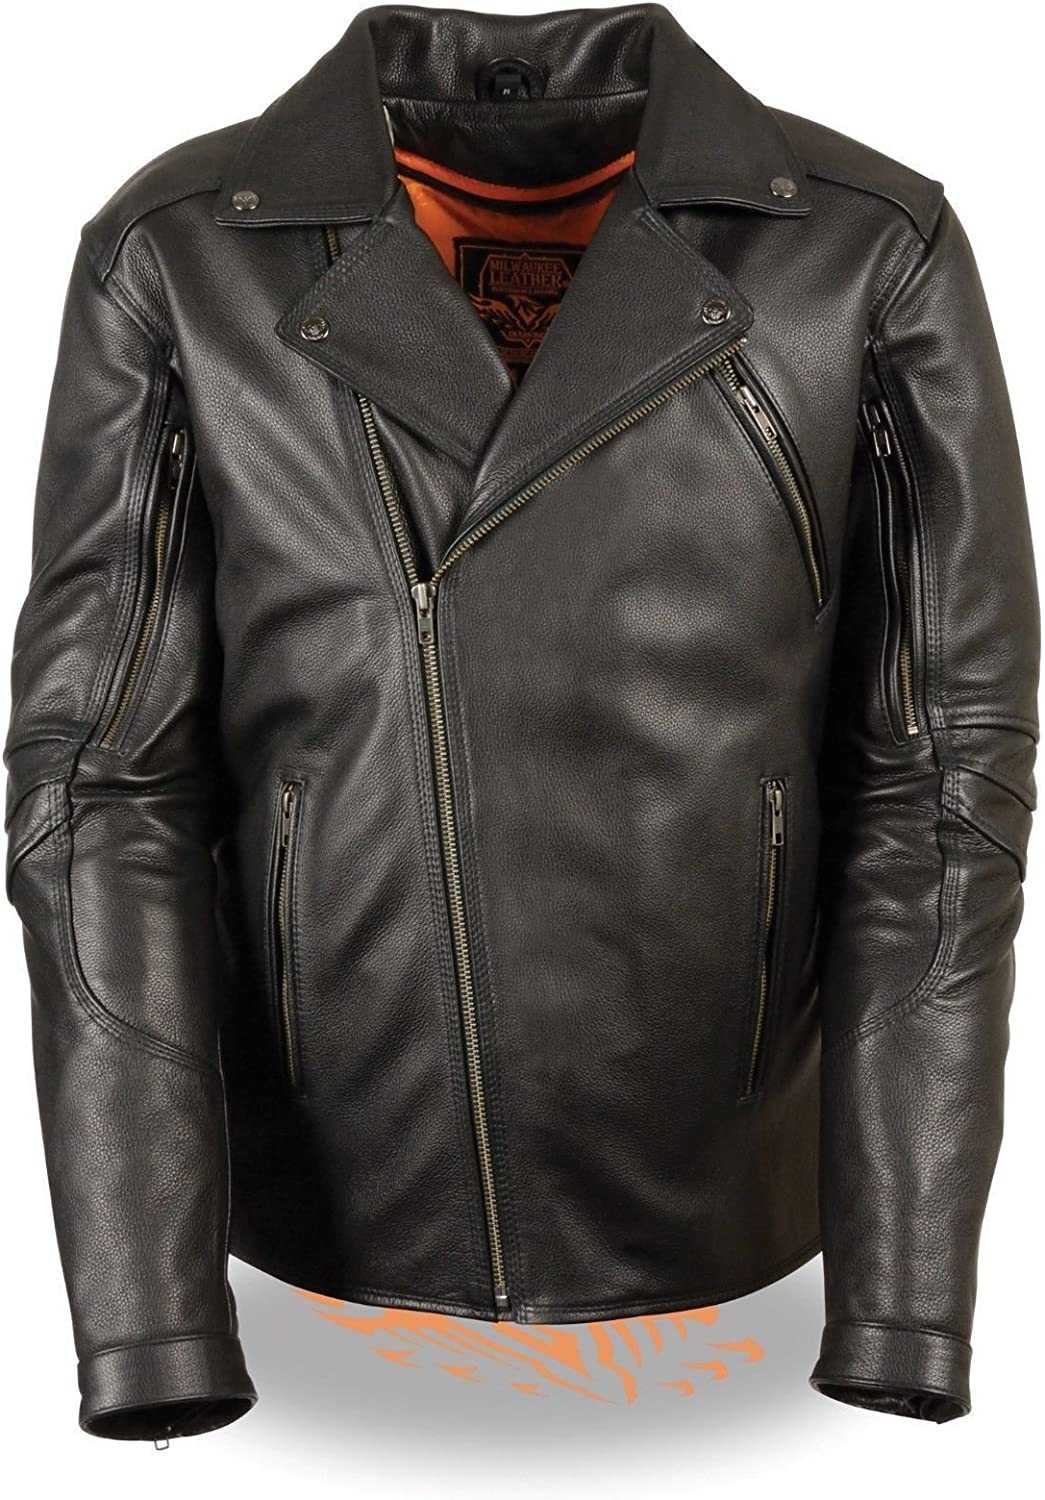 Milwaukee Men's Motorcycle Police Style Butter Soft Naked Leather Jacket W/Vent Gun Pocket (XL Regular)